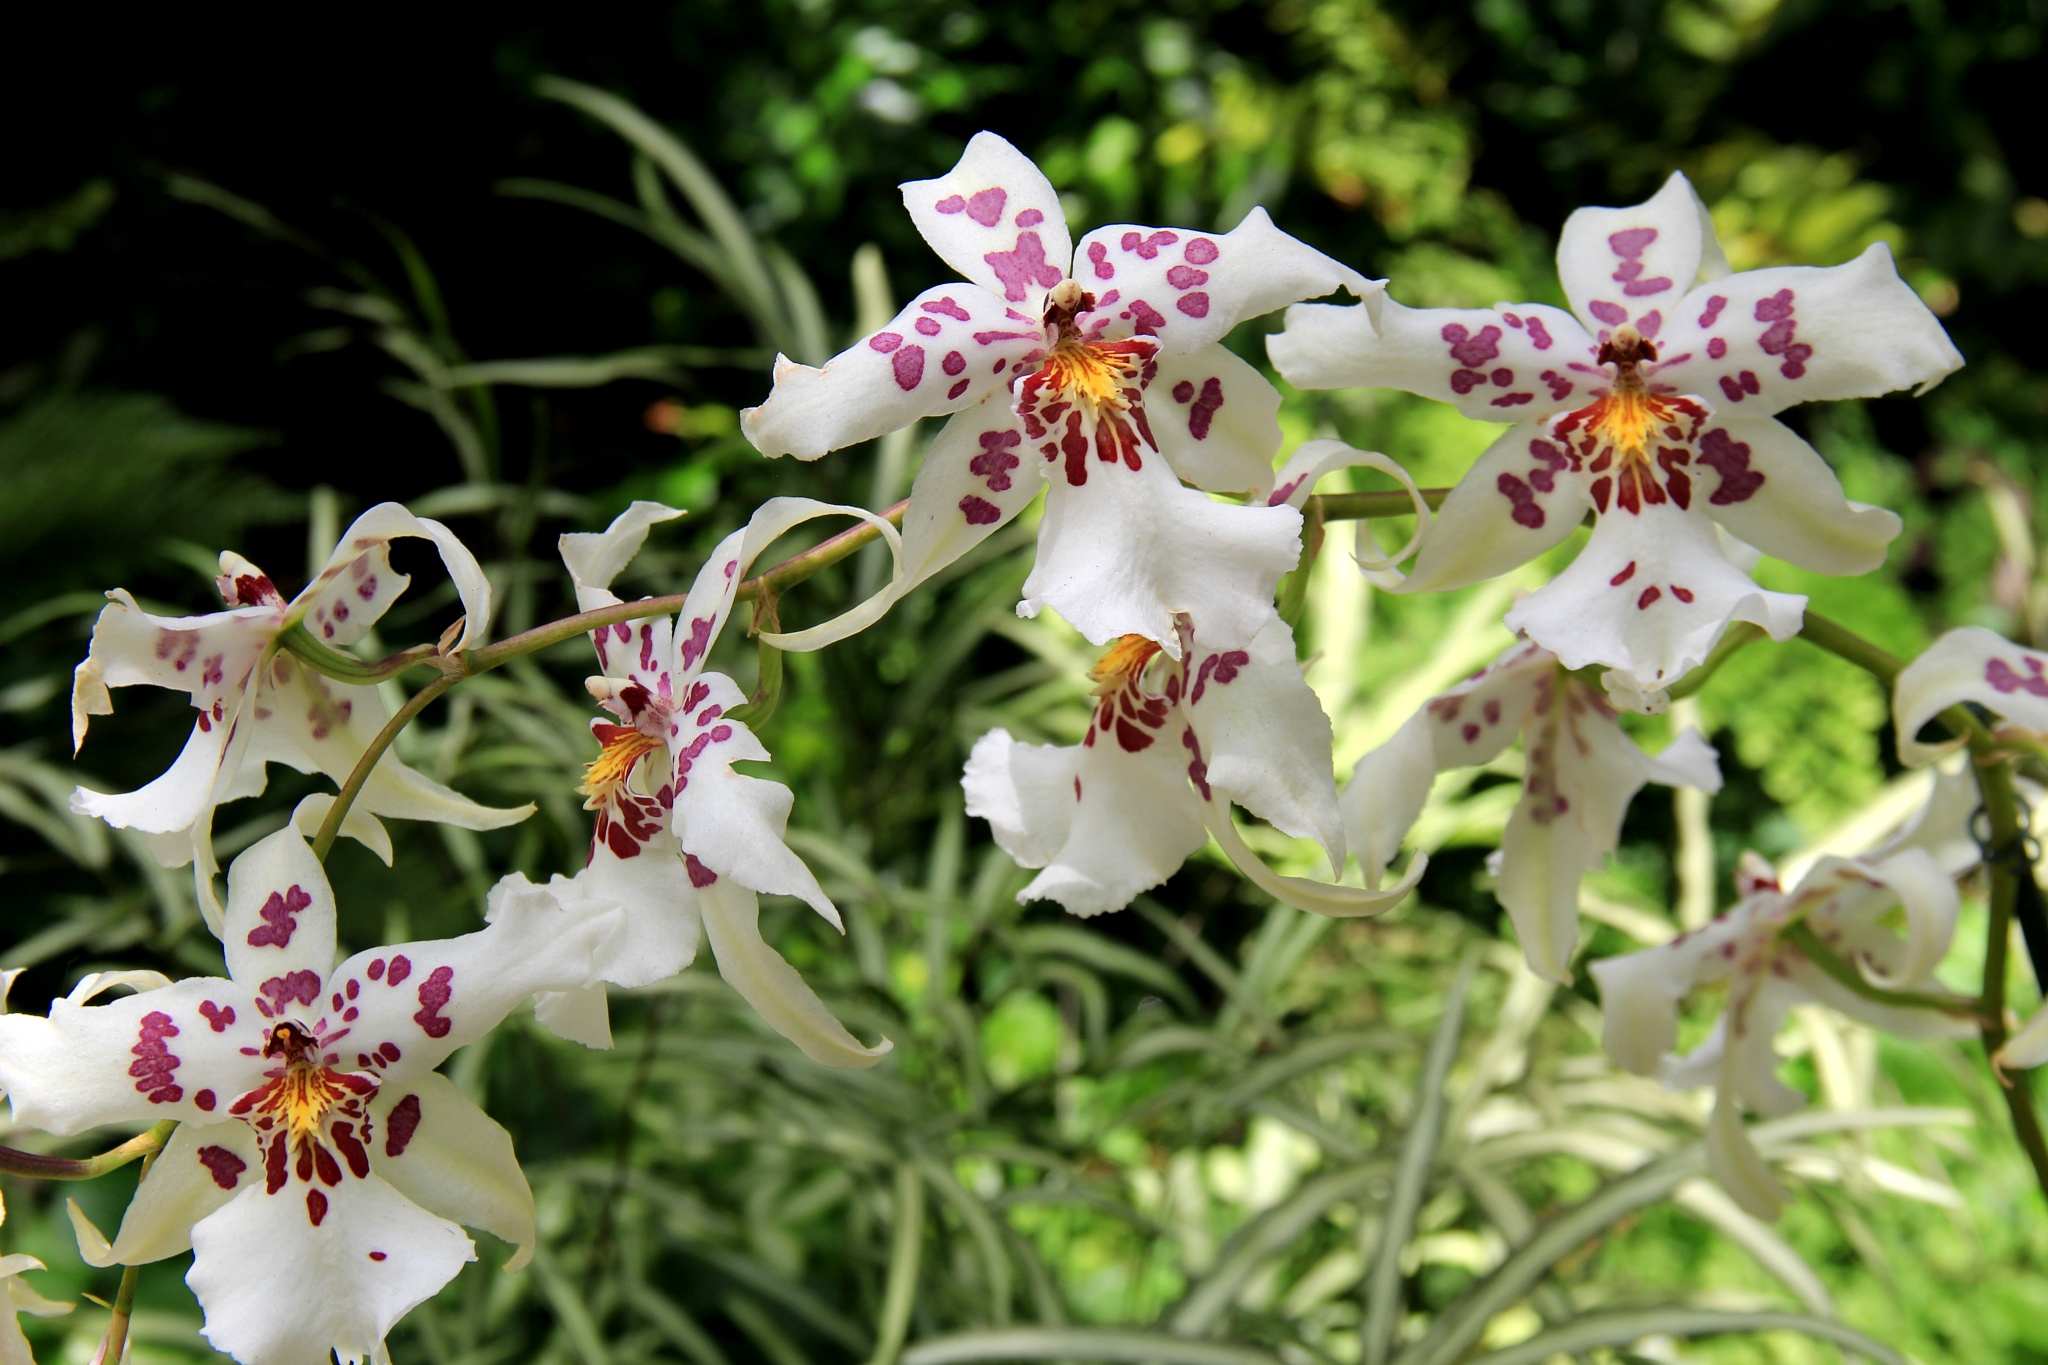 The beauty of orchids by theresaSt.john